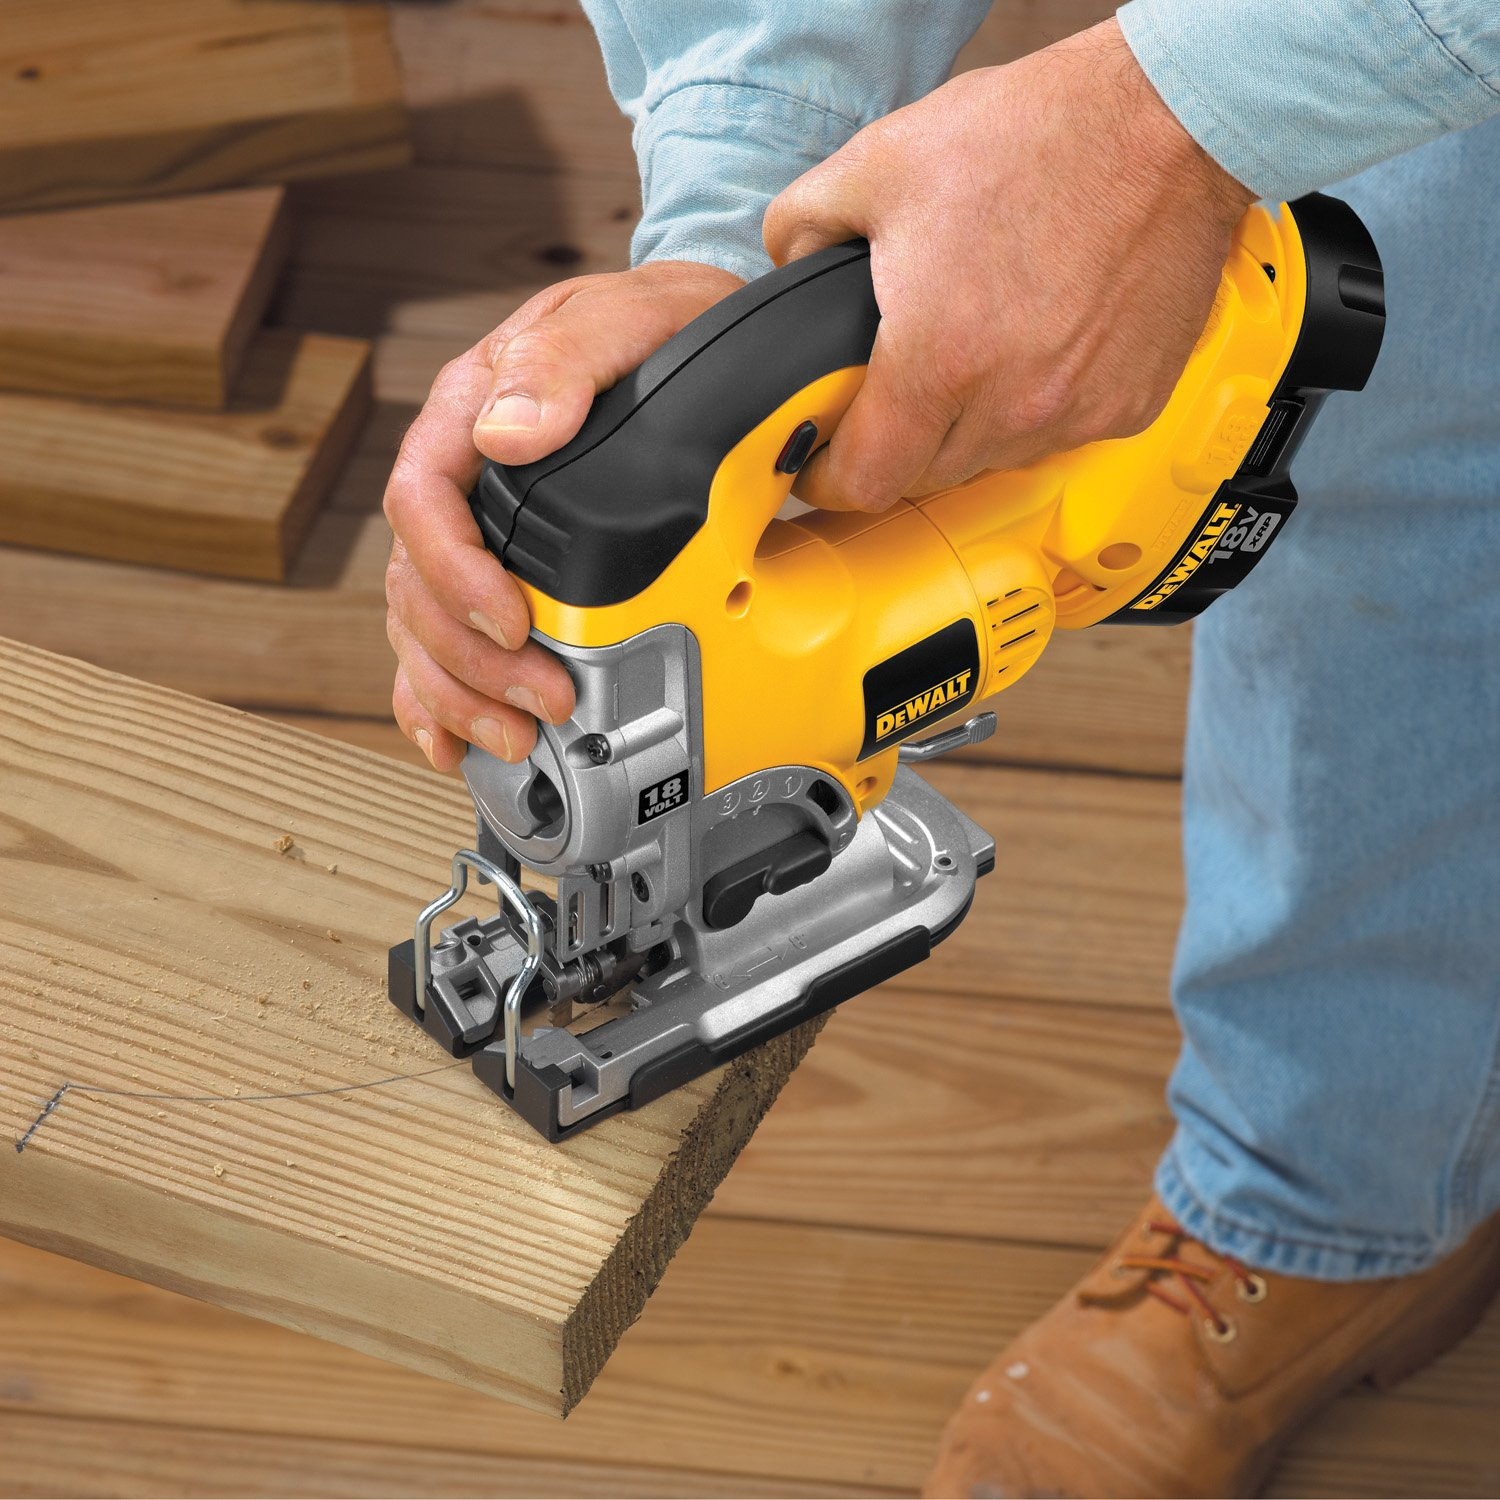 Dewalt dc330k heavy duty 18 volt ni cad cordless top handle jig saw dewalt dc330k heavy duty 18 volt ni cad cordless top handle jig saw kit power jig saws amazon greentooth Images